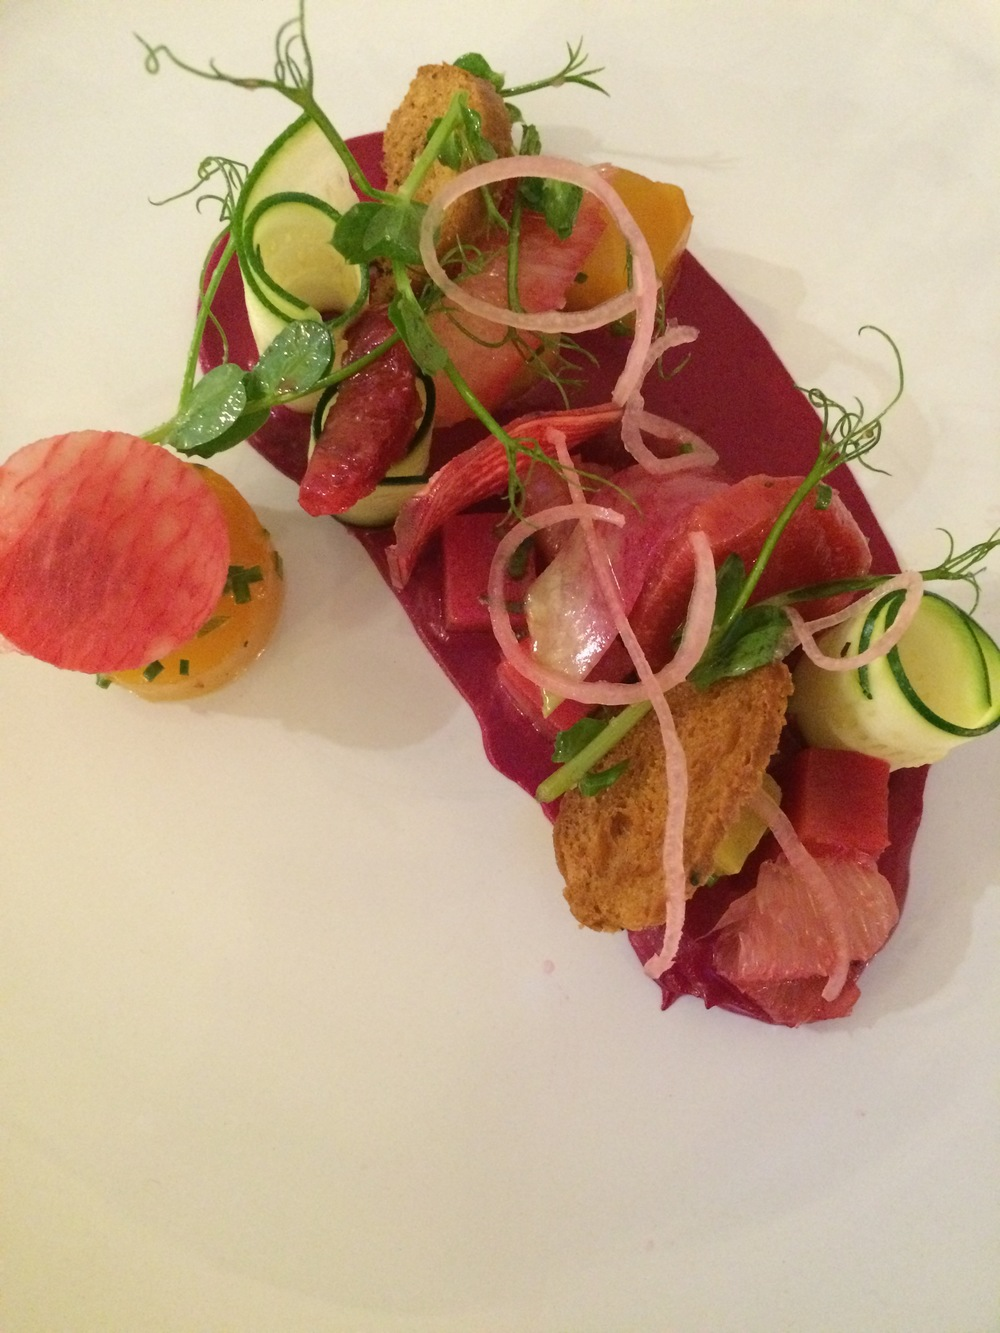 Beets-ag catering.jpg